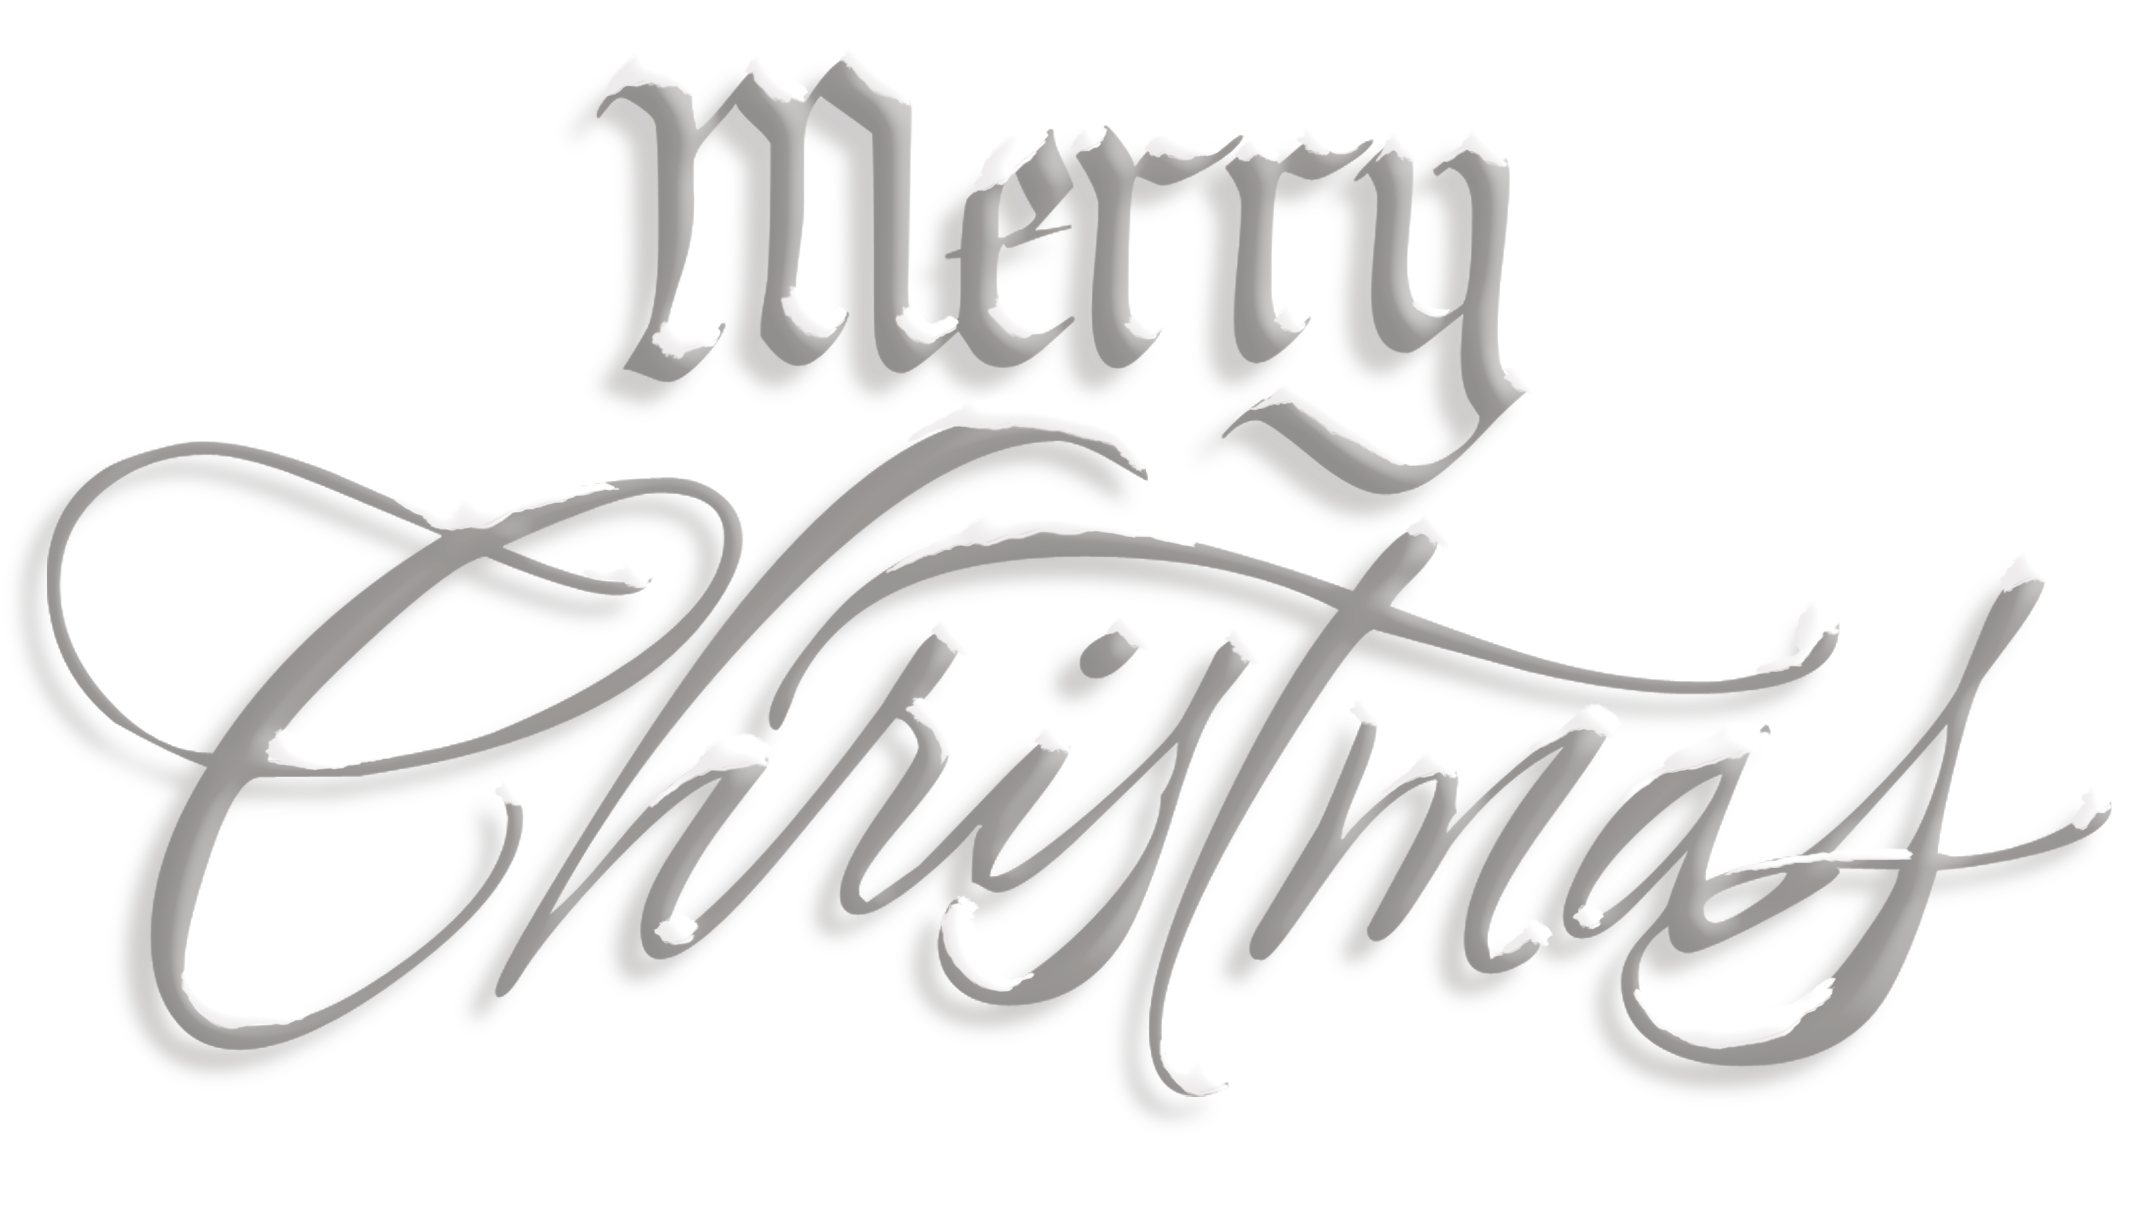 Merry Christmas Text Png Hd PNG Image